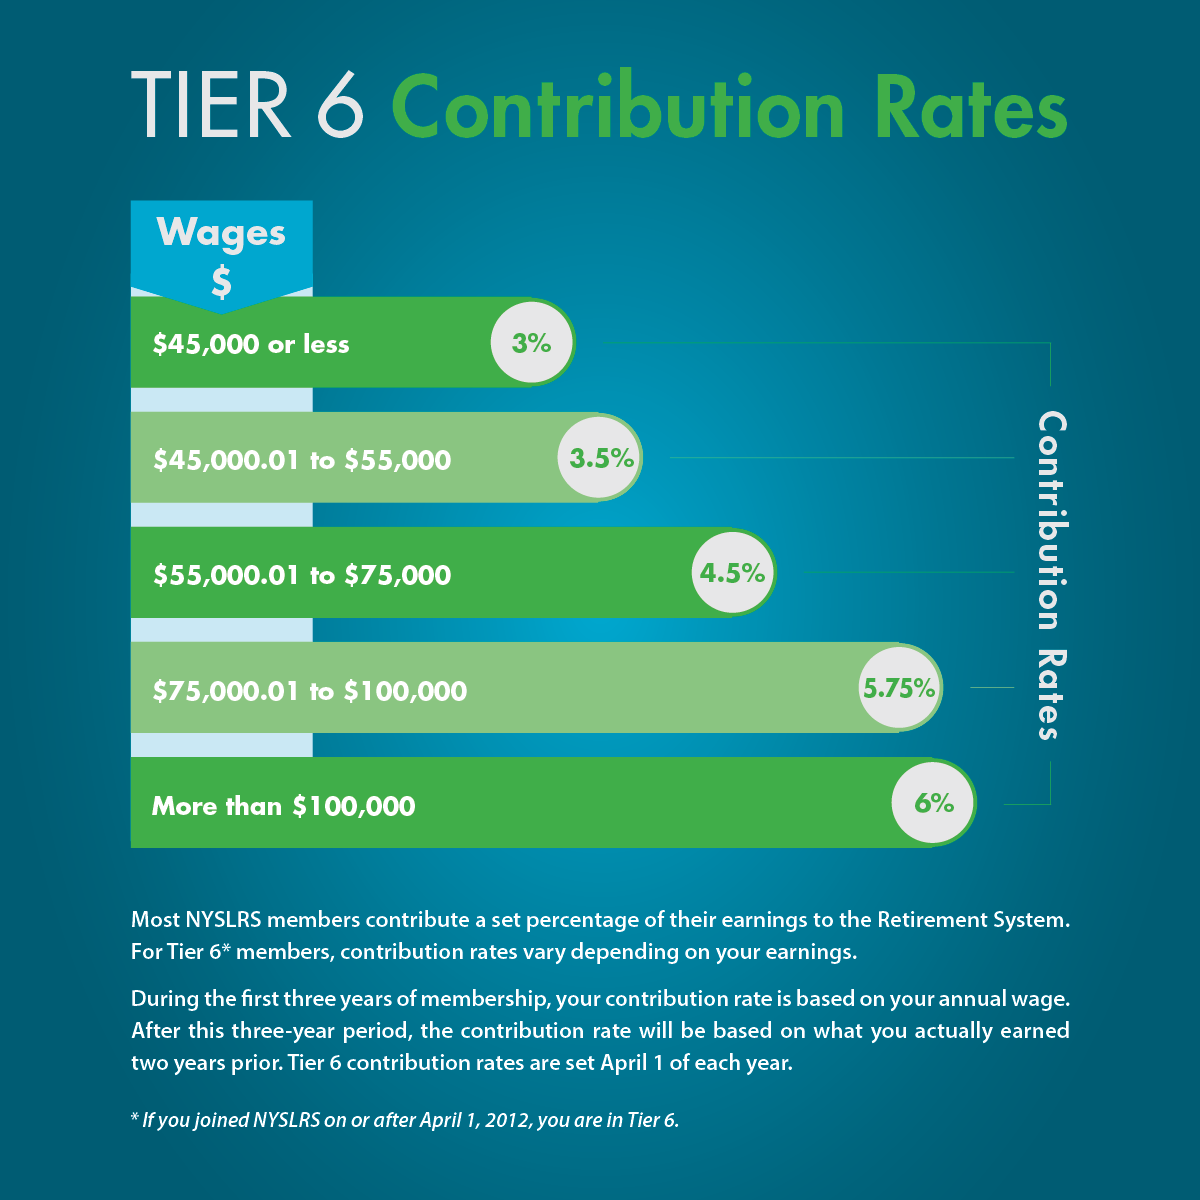 Tier 6 contributions